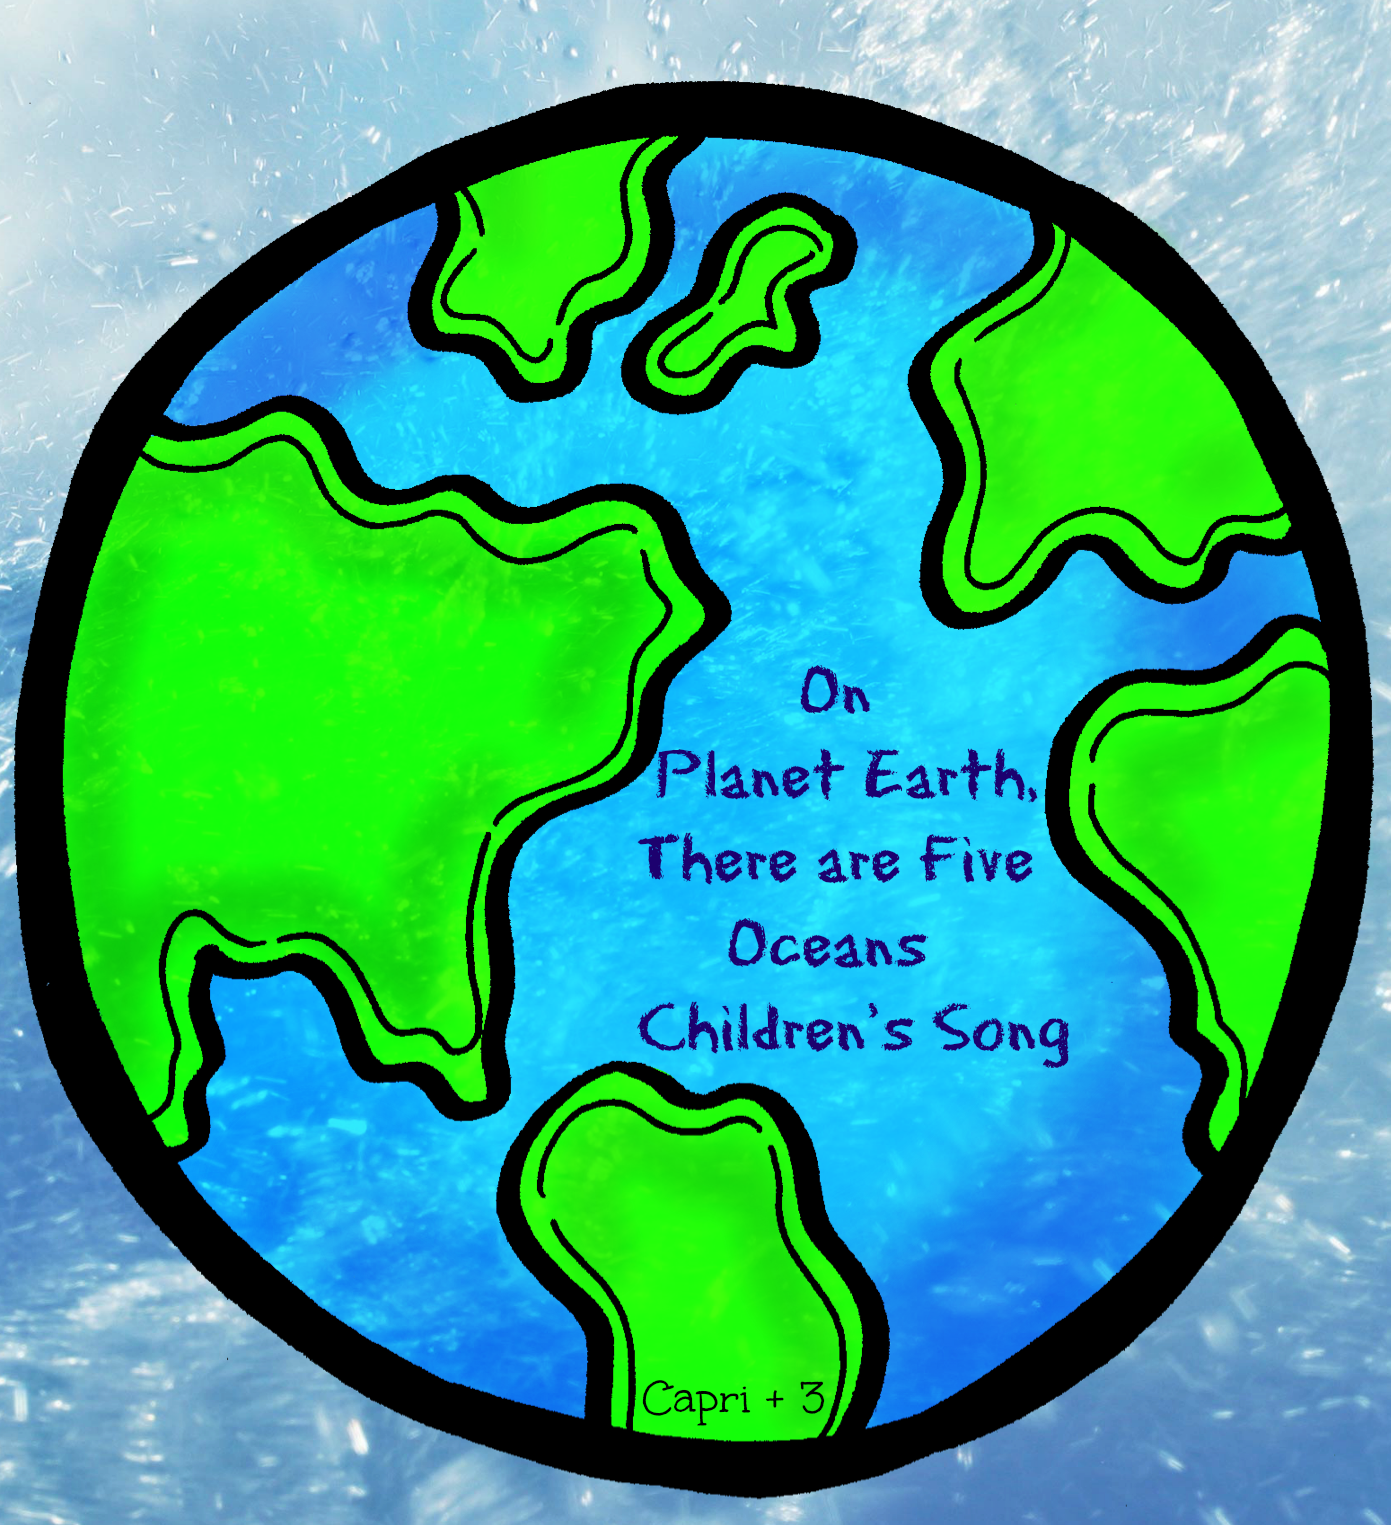 svg Planets clipart kids. On planet earth there